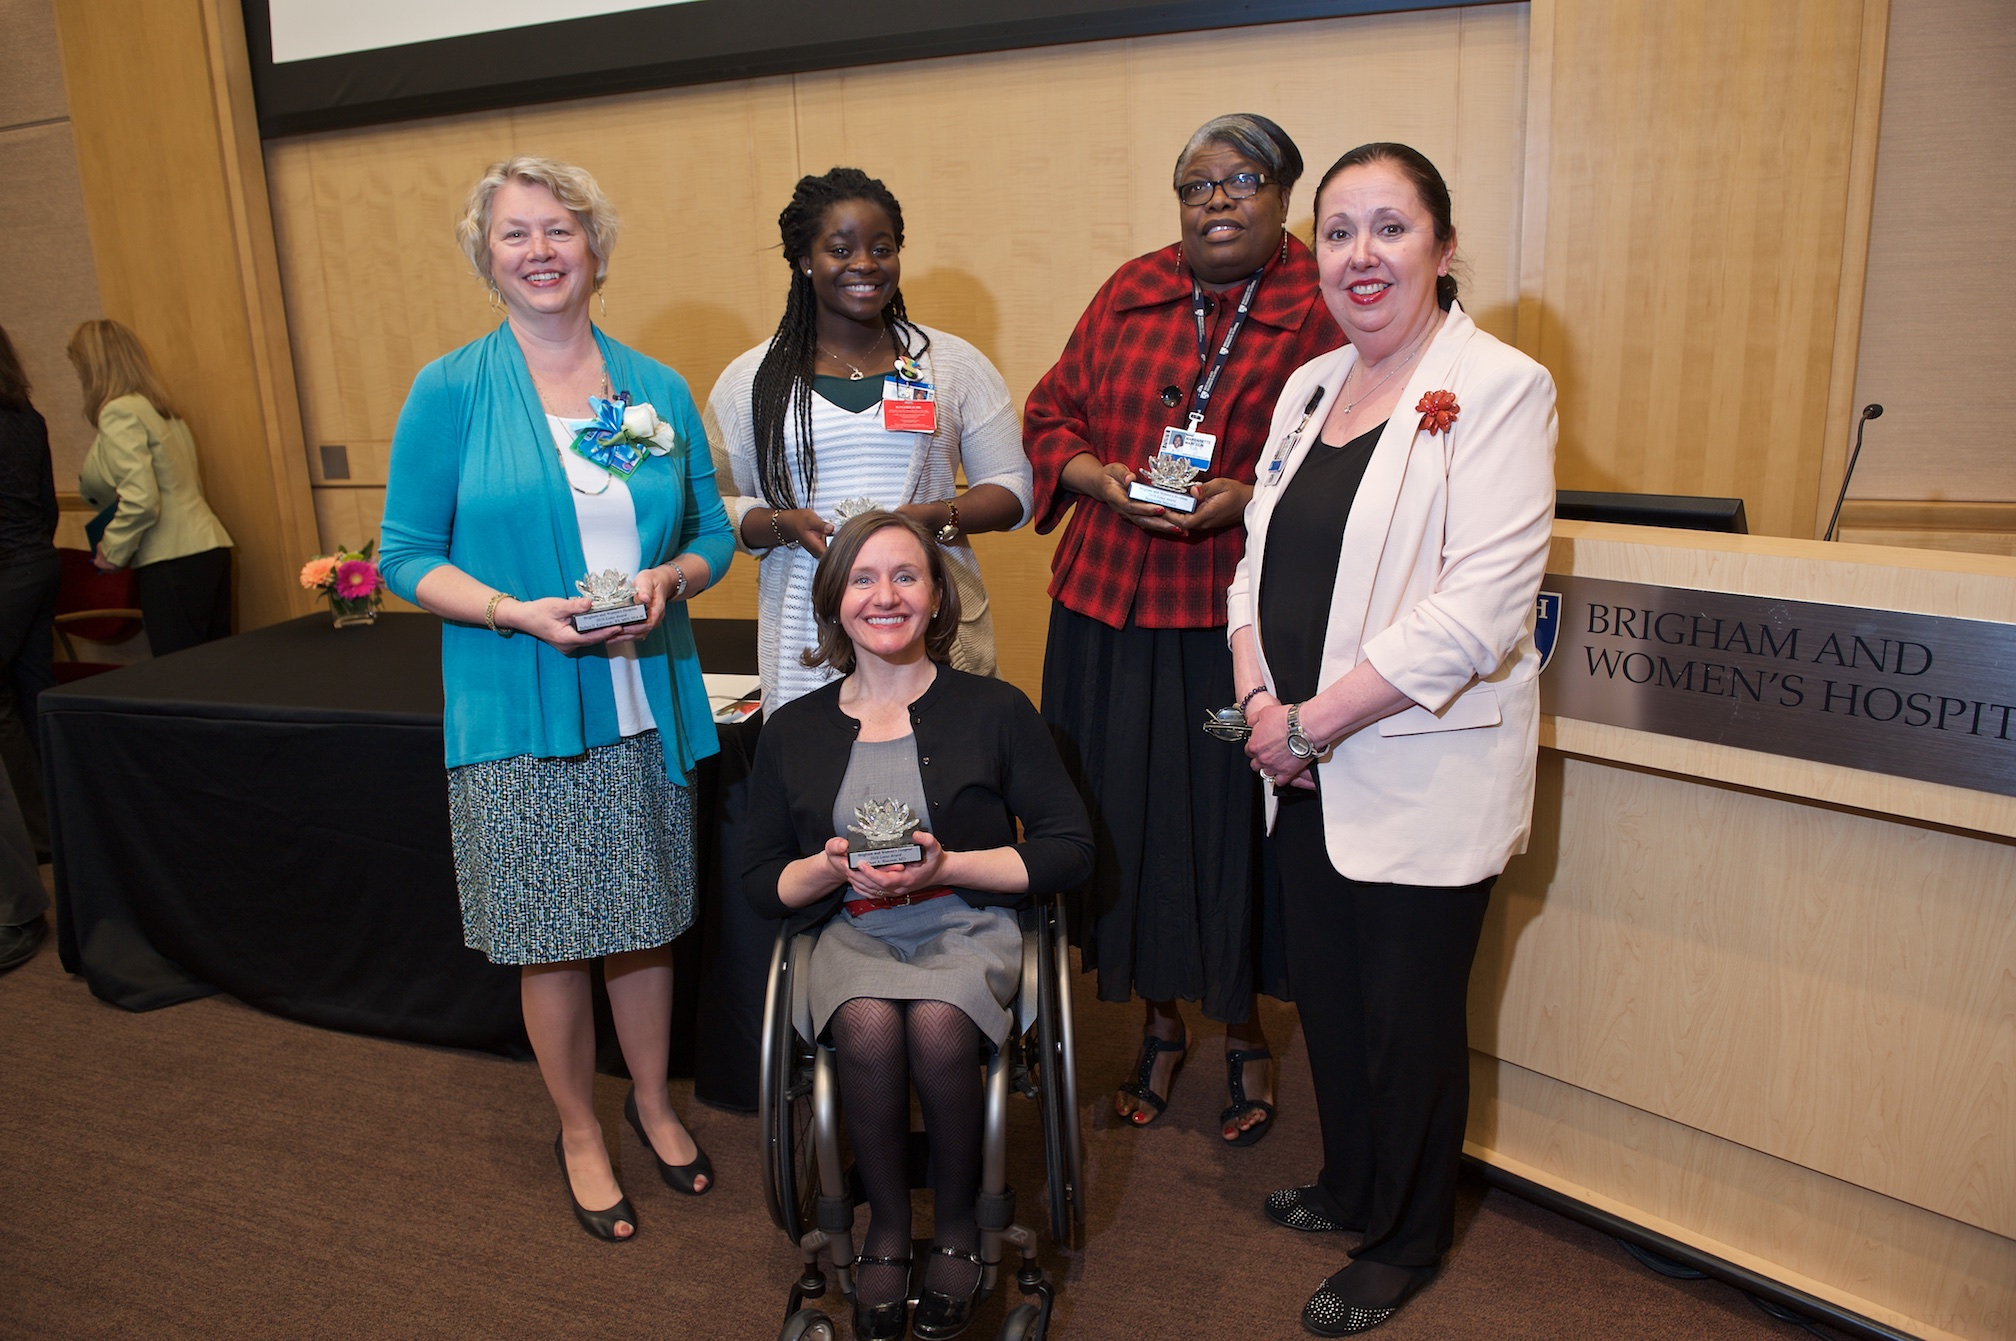 From left: Lotus Award recipients Barbara Kalinowski, Maxine Rose, Cheri Blauwet and Margarette Marcelin, with Jackie Somerville